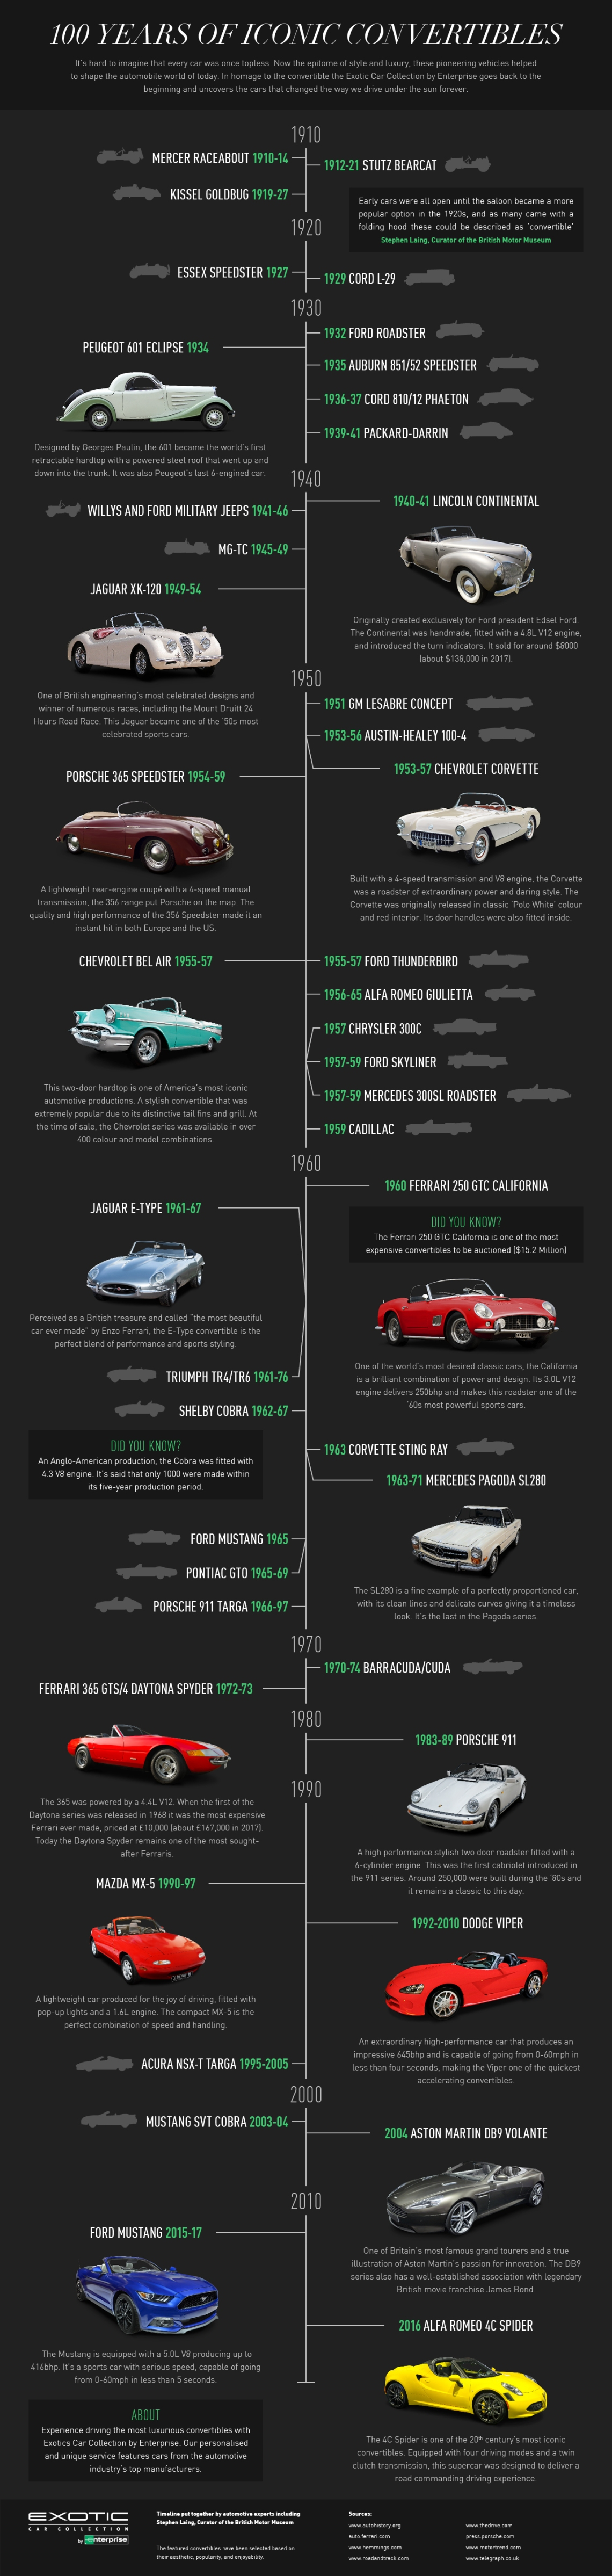 100-Years-of-Iconic-Convertibles-Extotic-Cars01